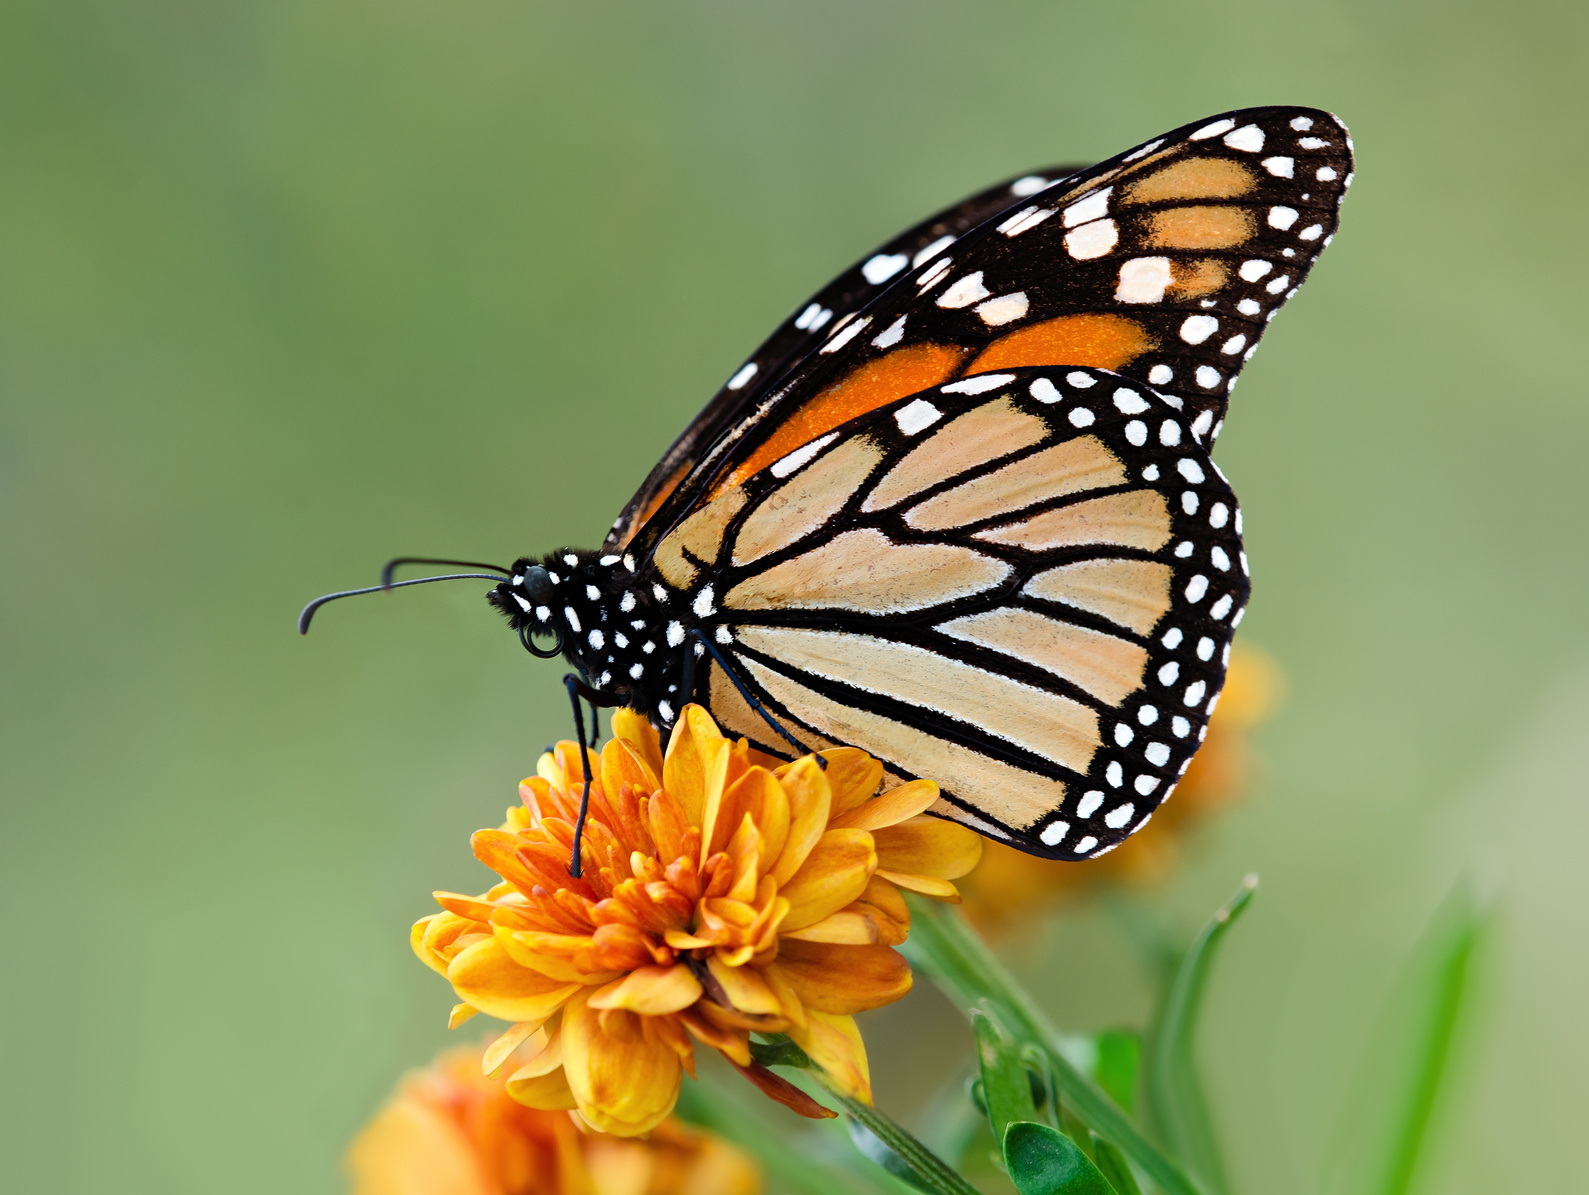 Monarch Butterflies, bees, and all pollinators need protection from Neocinotinoids!